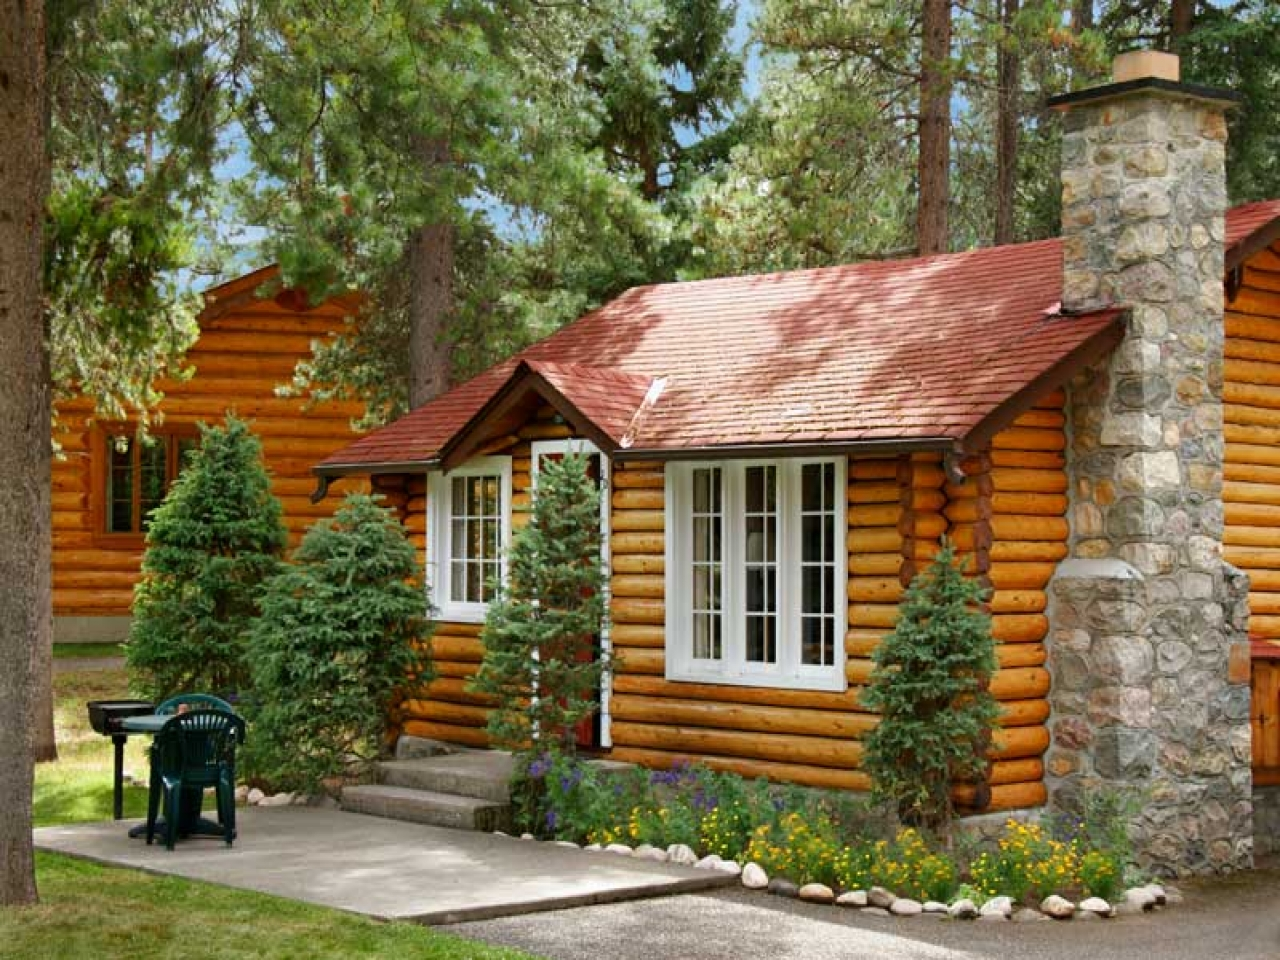 One bedroom log cabin 3 bedroom cabins in the smoky for Www cabins of the smoky mountains com